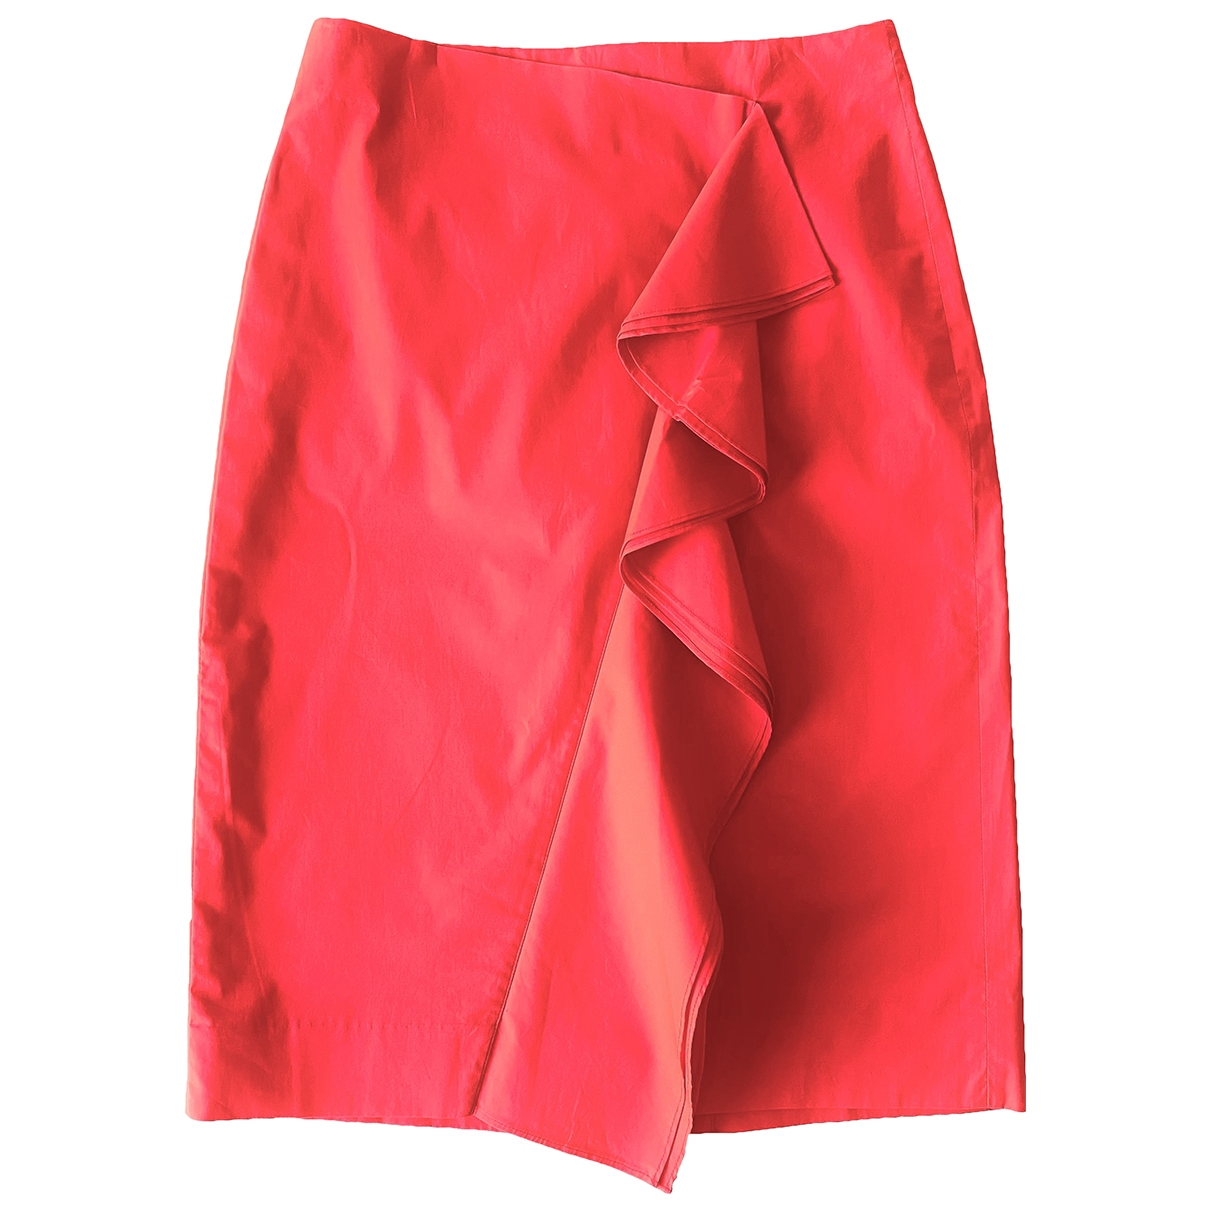 J.crew \N Red Cotton skirt for Women 2 US